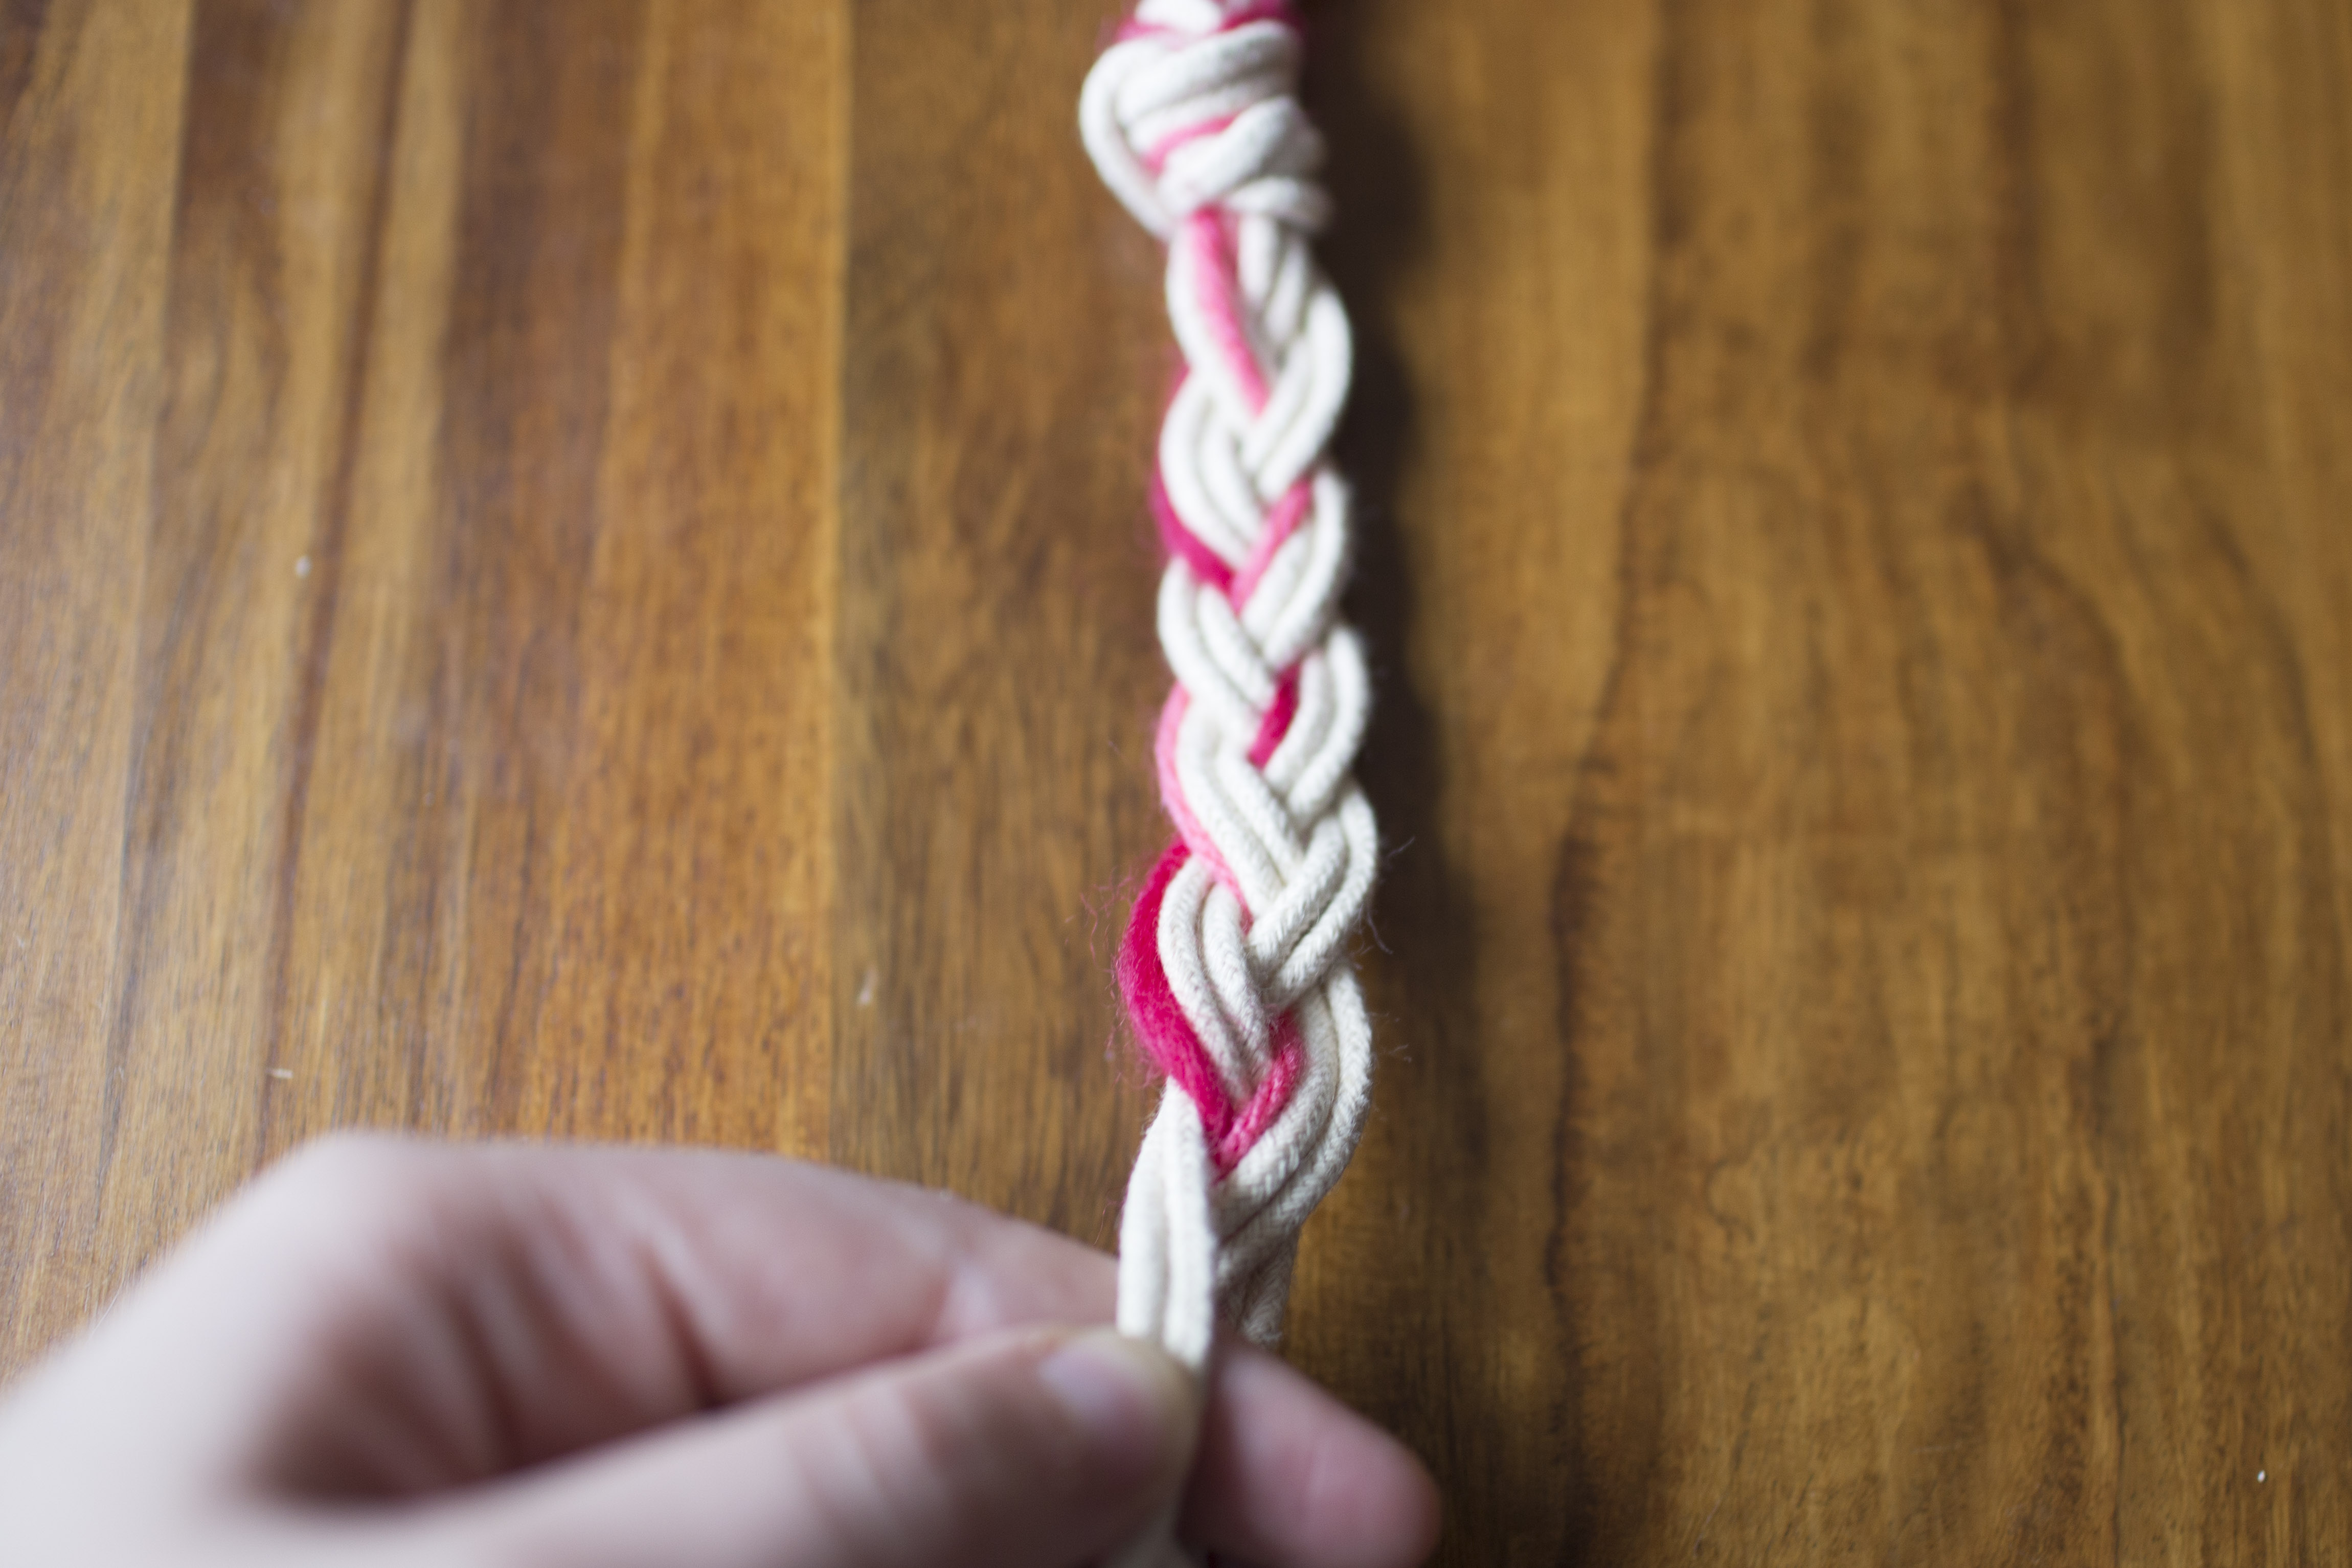 How To Make Diy Curtain Tie Backs From Rope Apartment Therapy